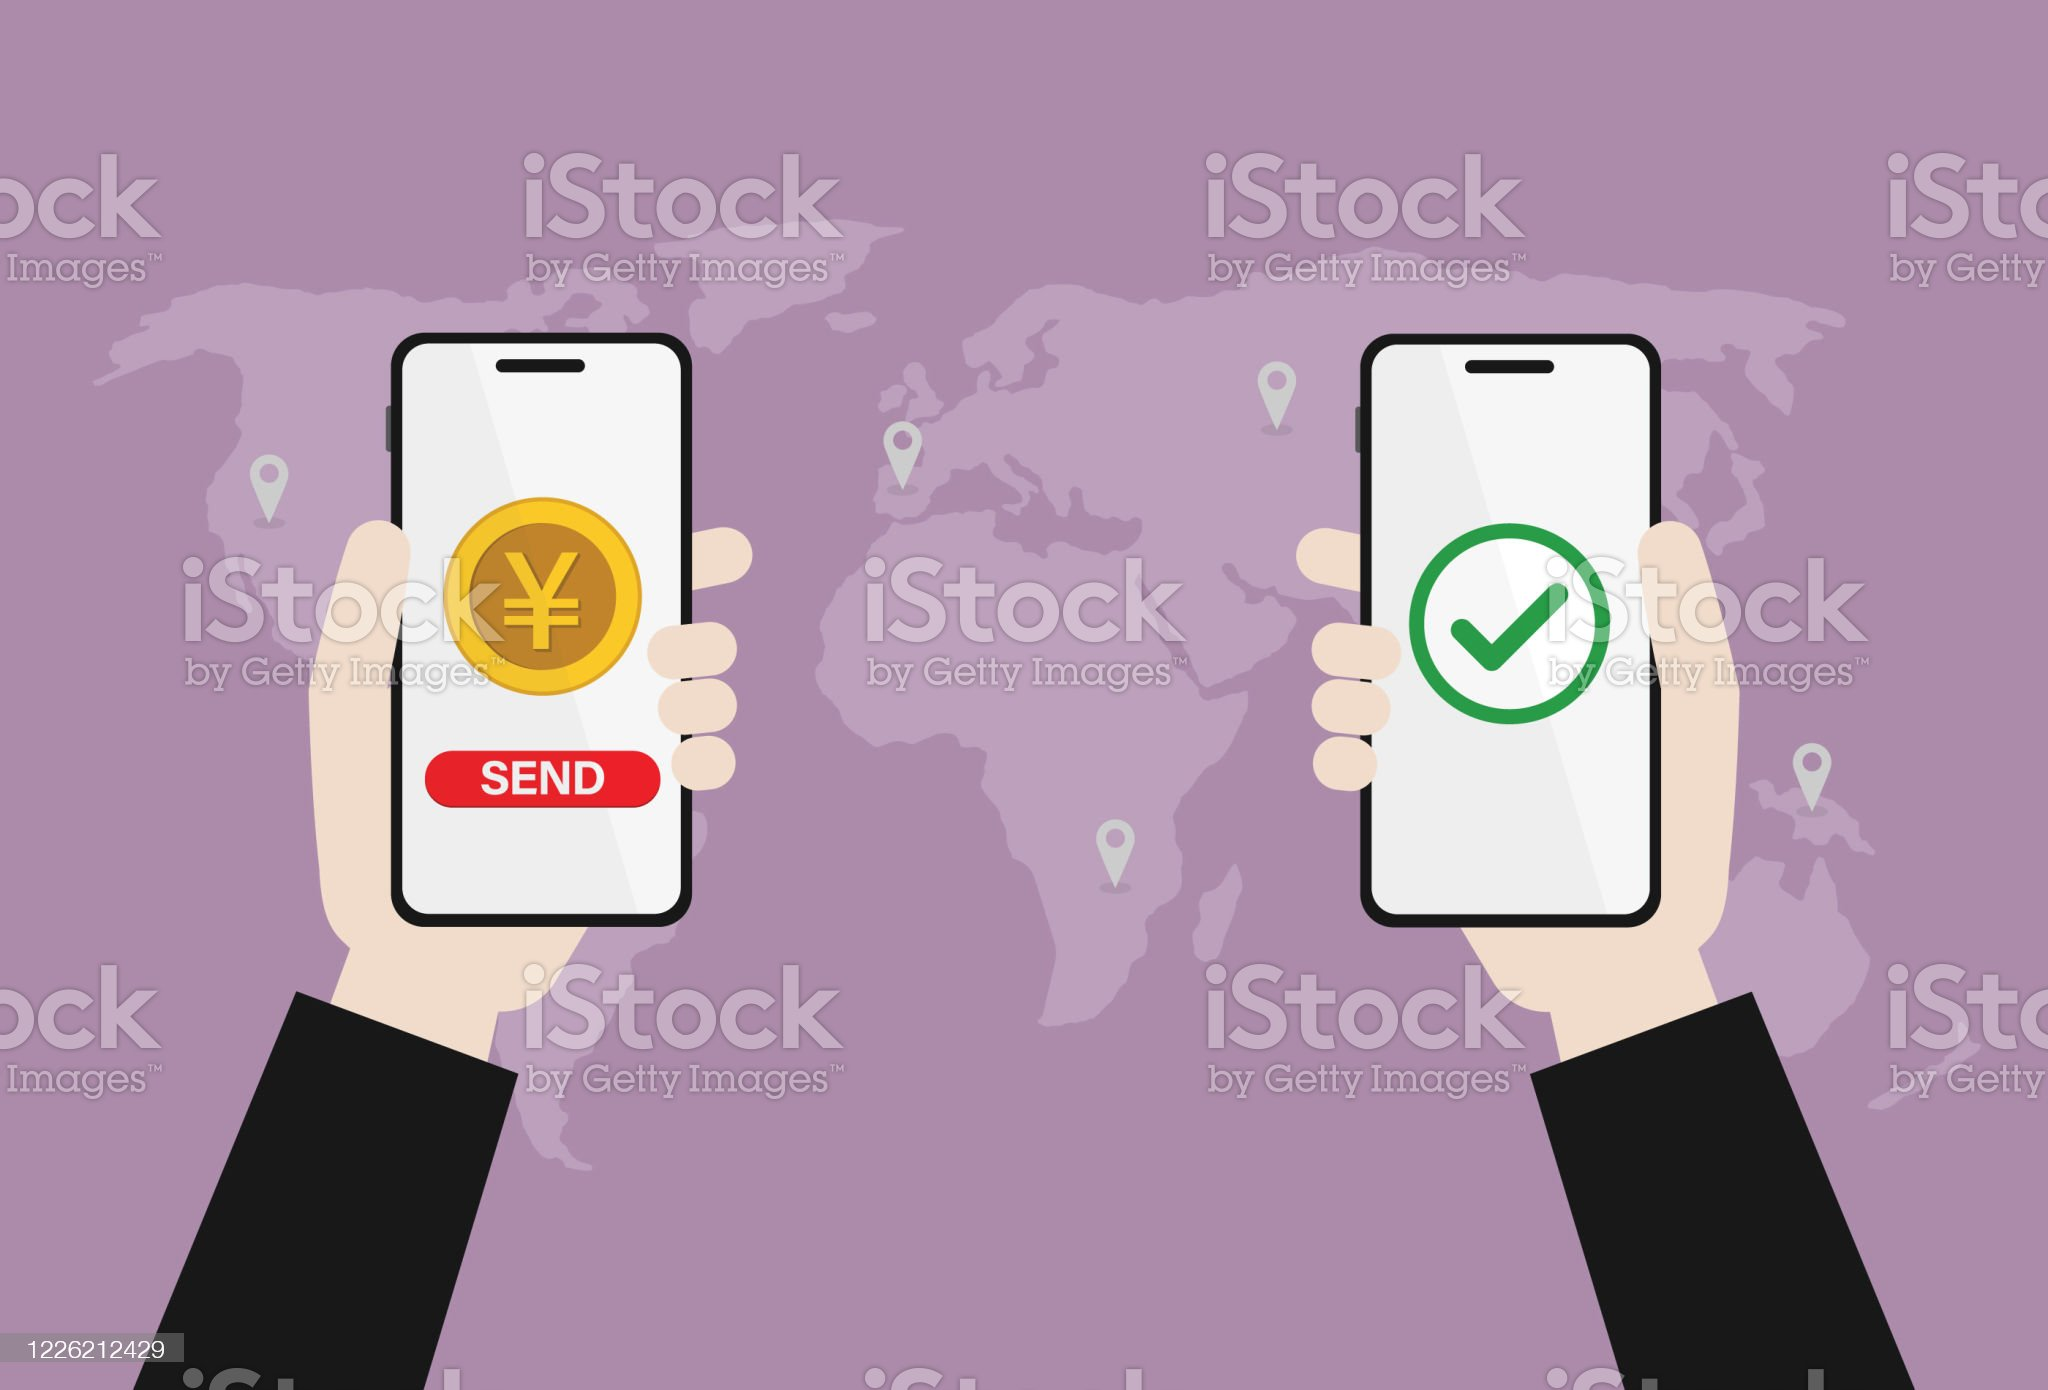 Businessman transfer a Japanese currency by mobile phone Send money, Transfer money, Money transfer, Payment, Yen coin, Mobile banking, Yuan coin, Chinese currency Digitally Generated Image stock vector